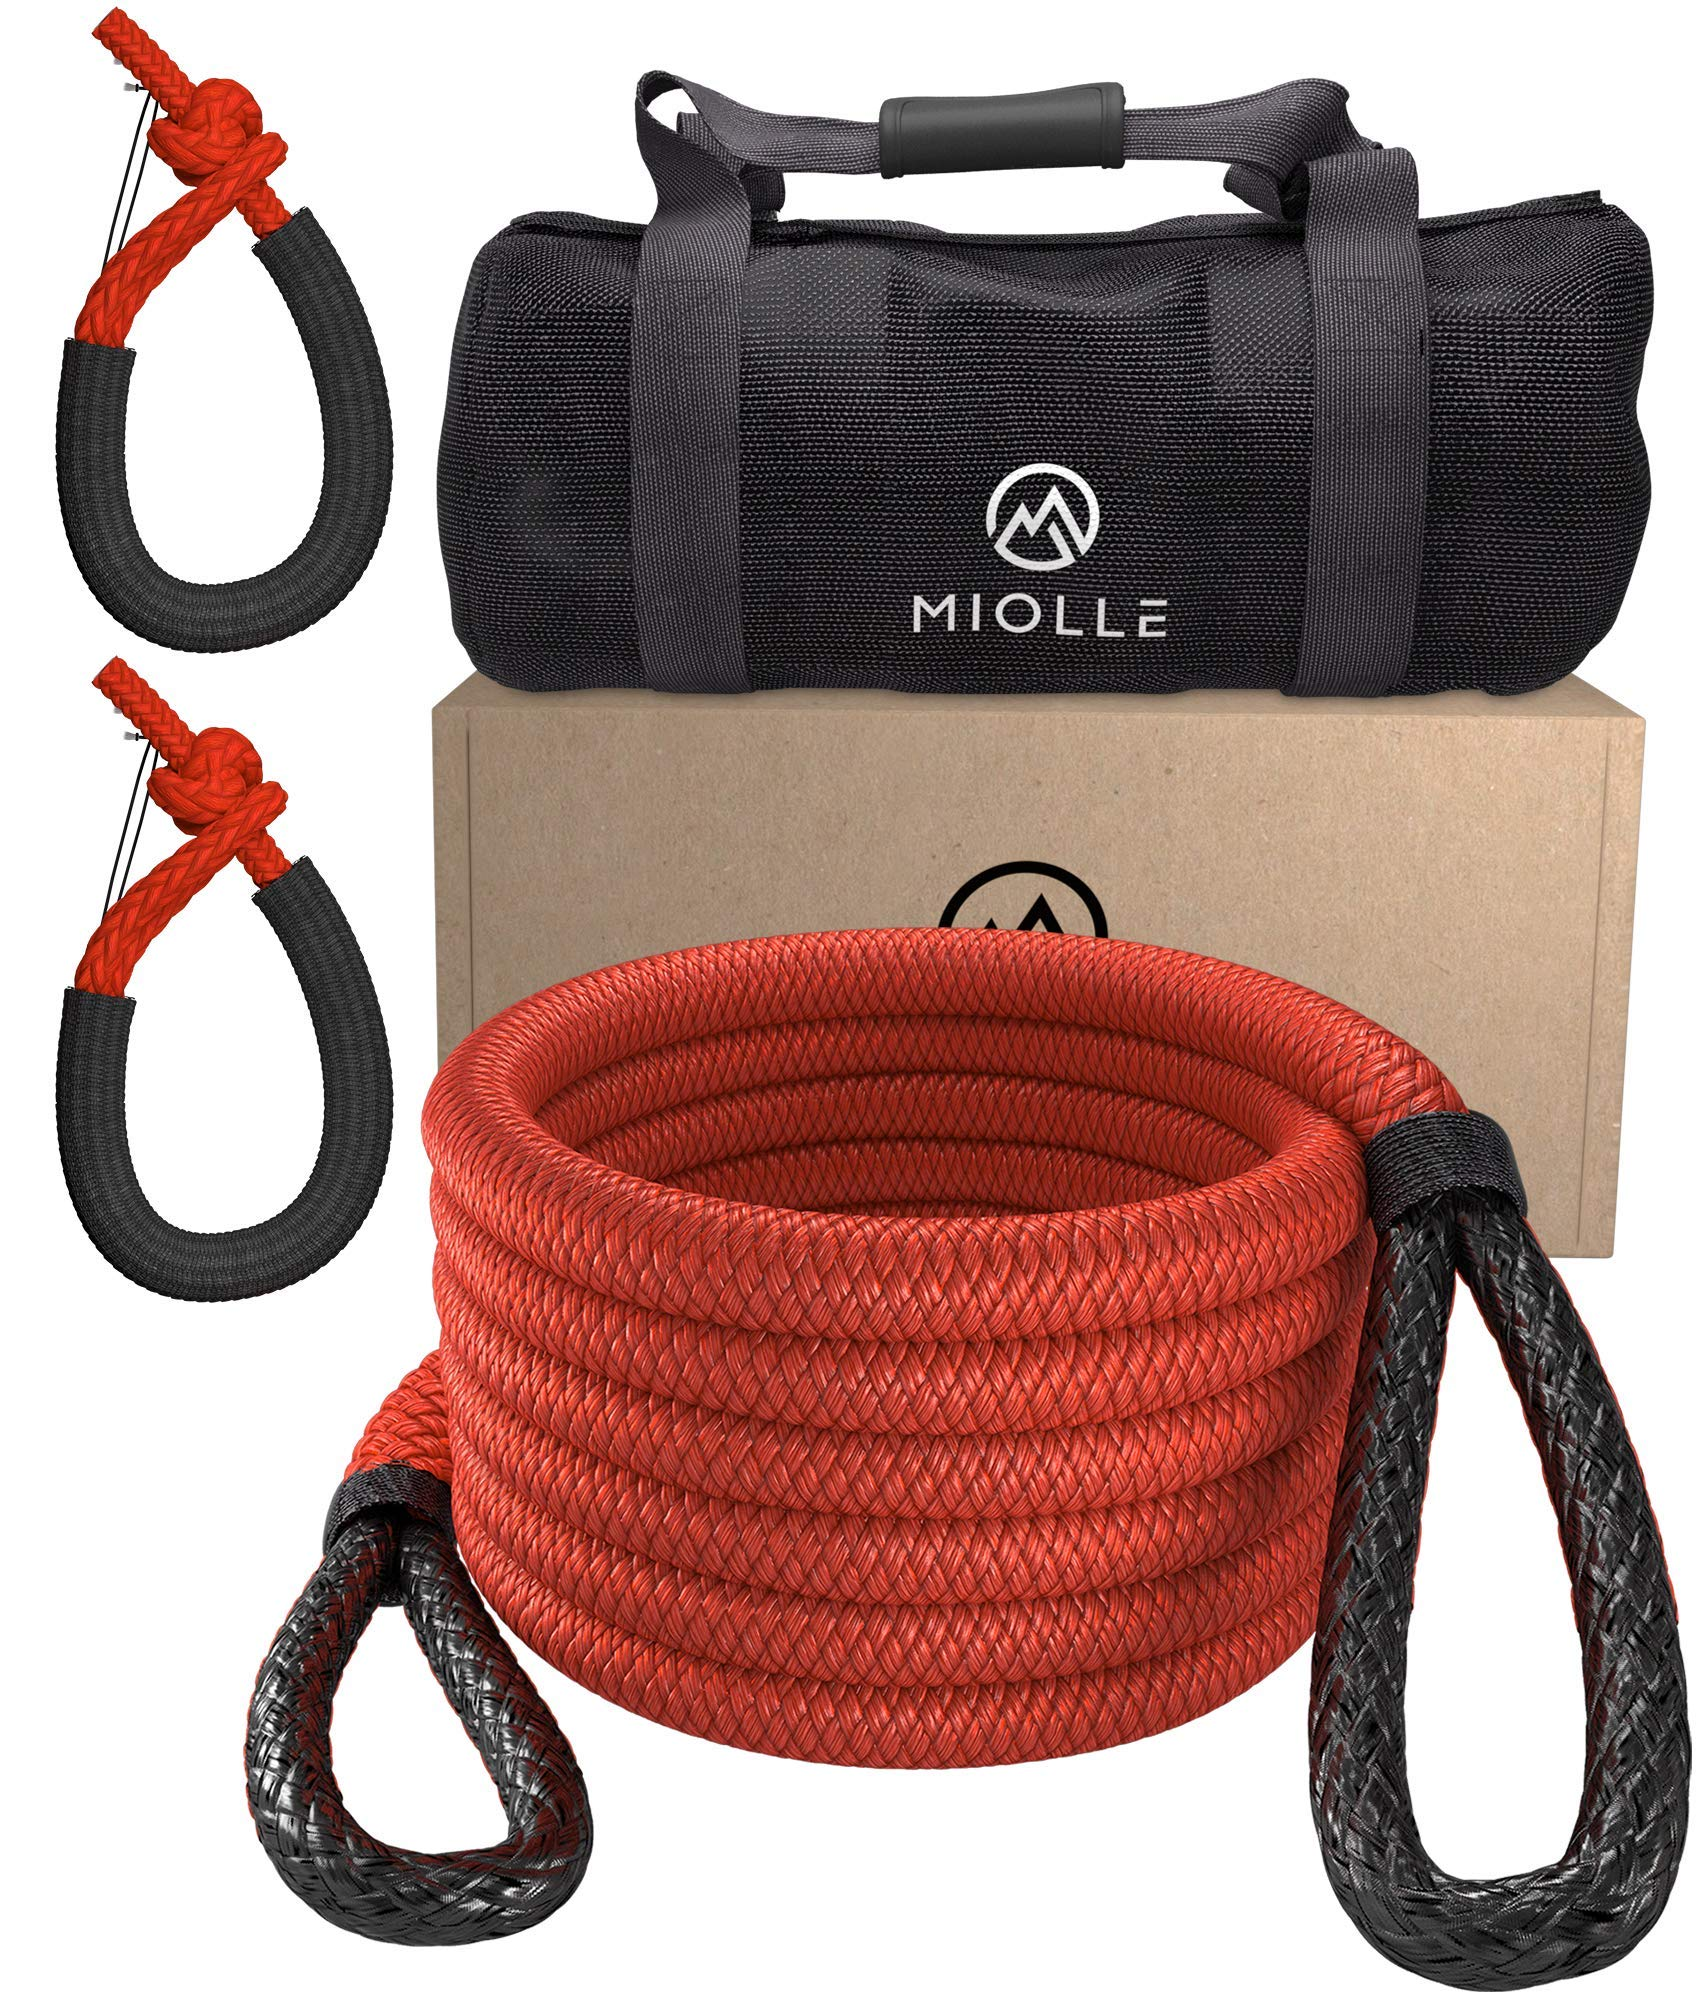 Red 29,300 lbs Miolle 7//8 x 30 Kinetic Recovery /& Tow Rope 35000 lbs with 2 Spectra Fiber Soft Shackles 3//8 x 6